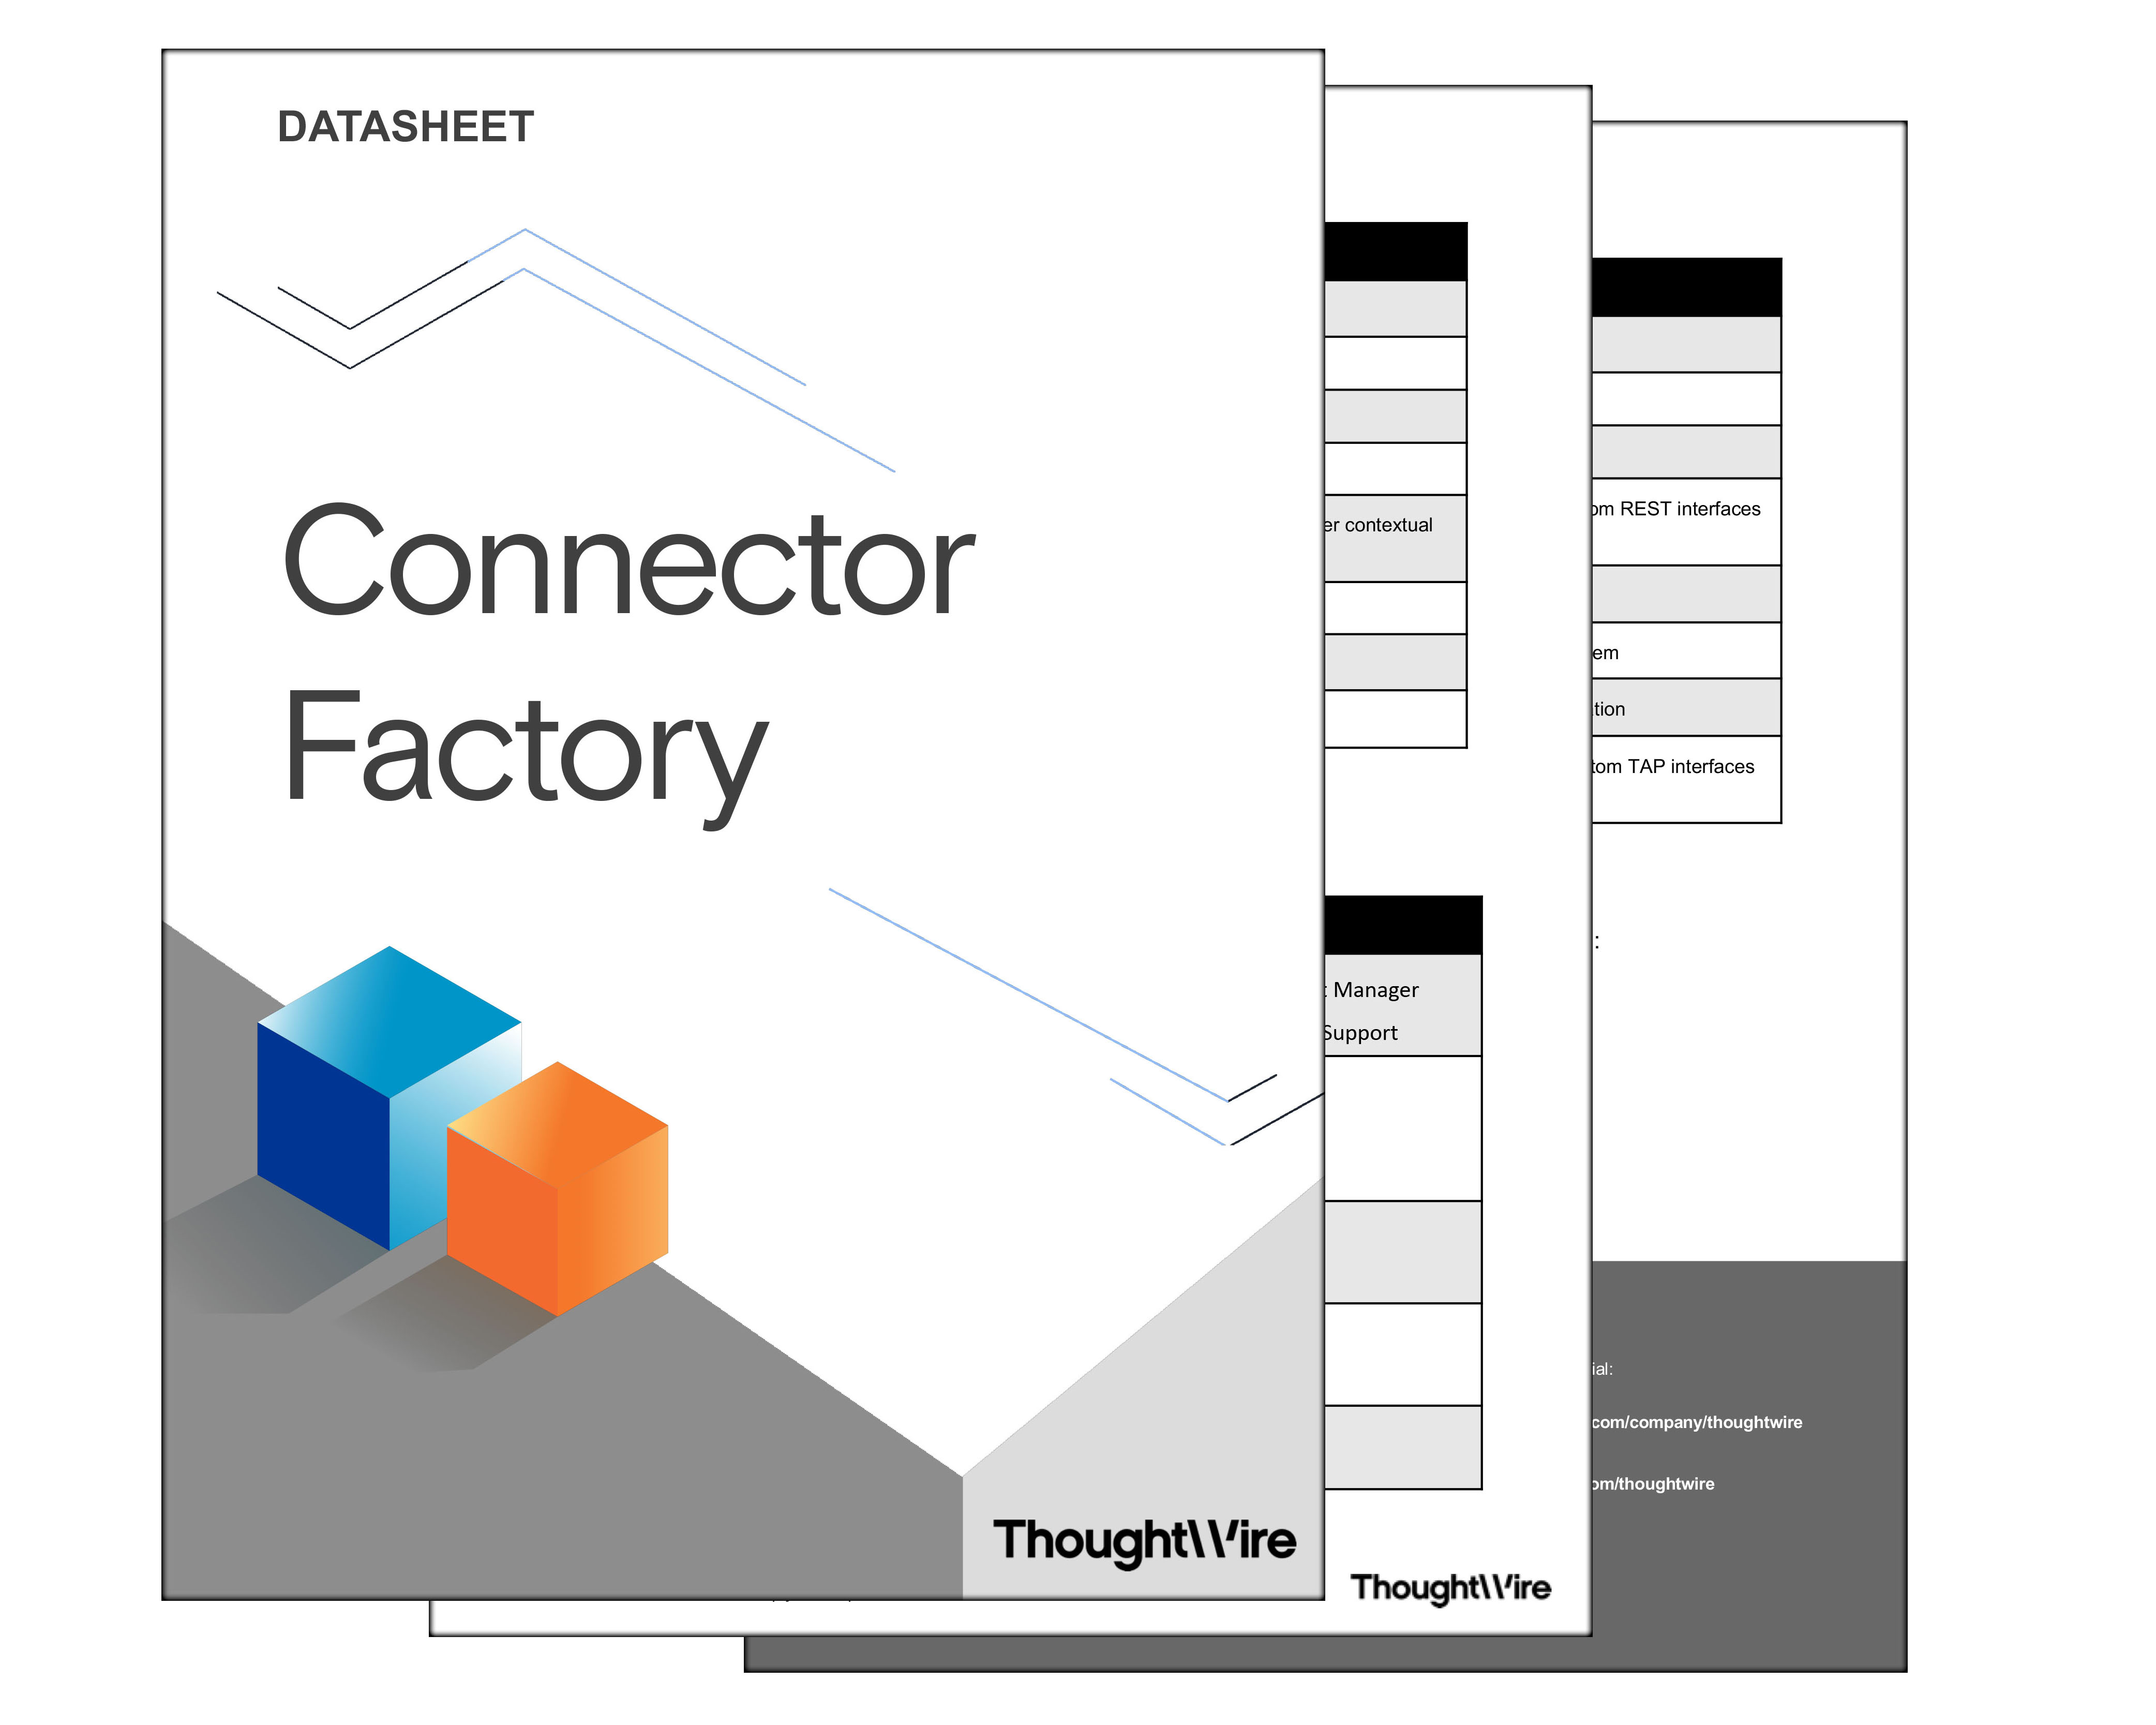 Connector factory